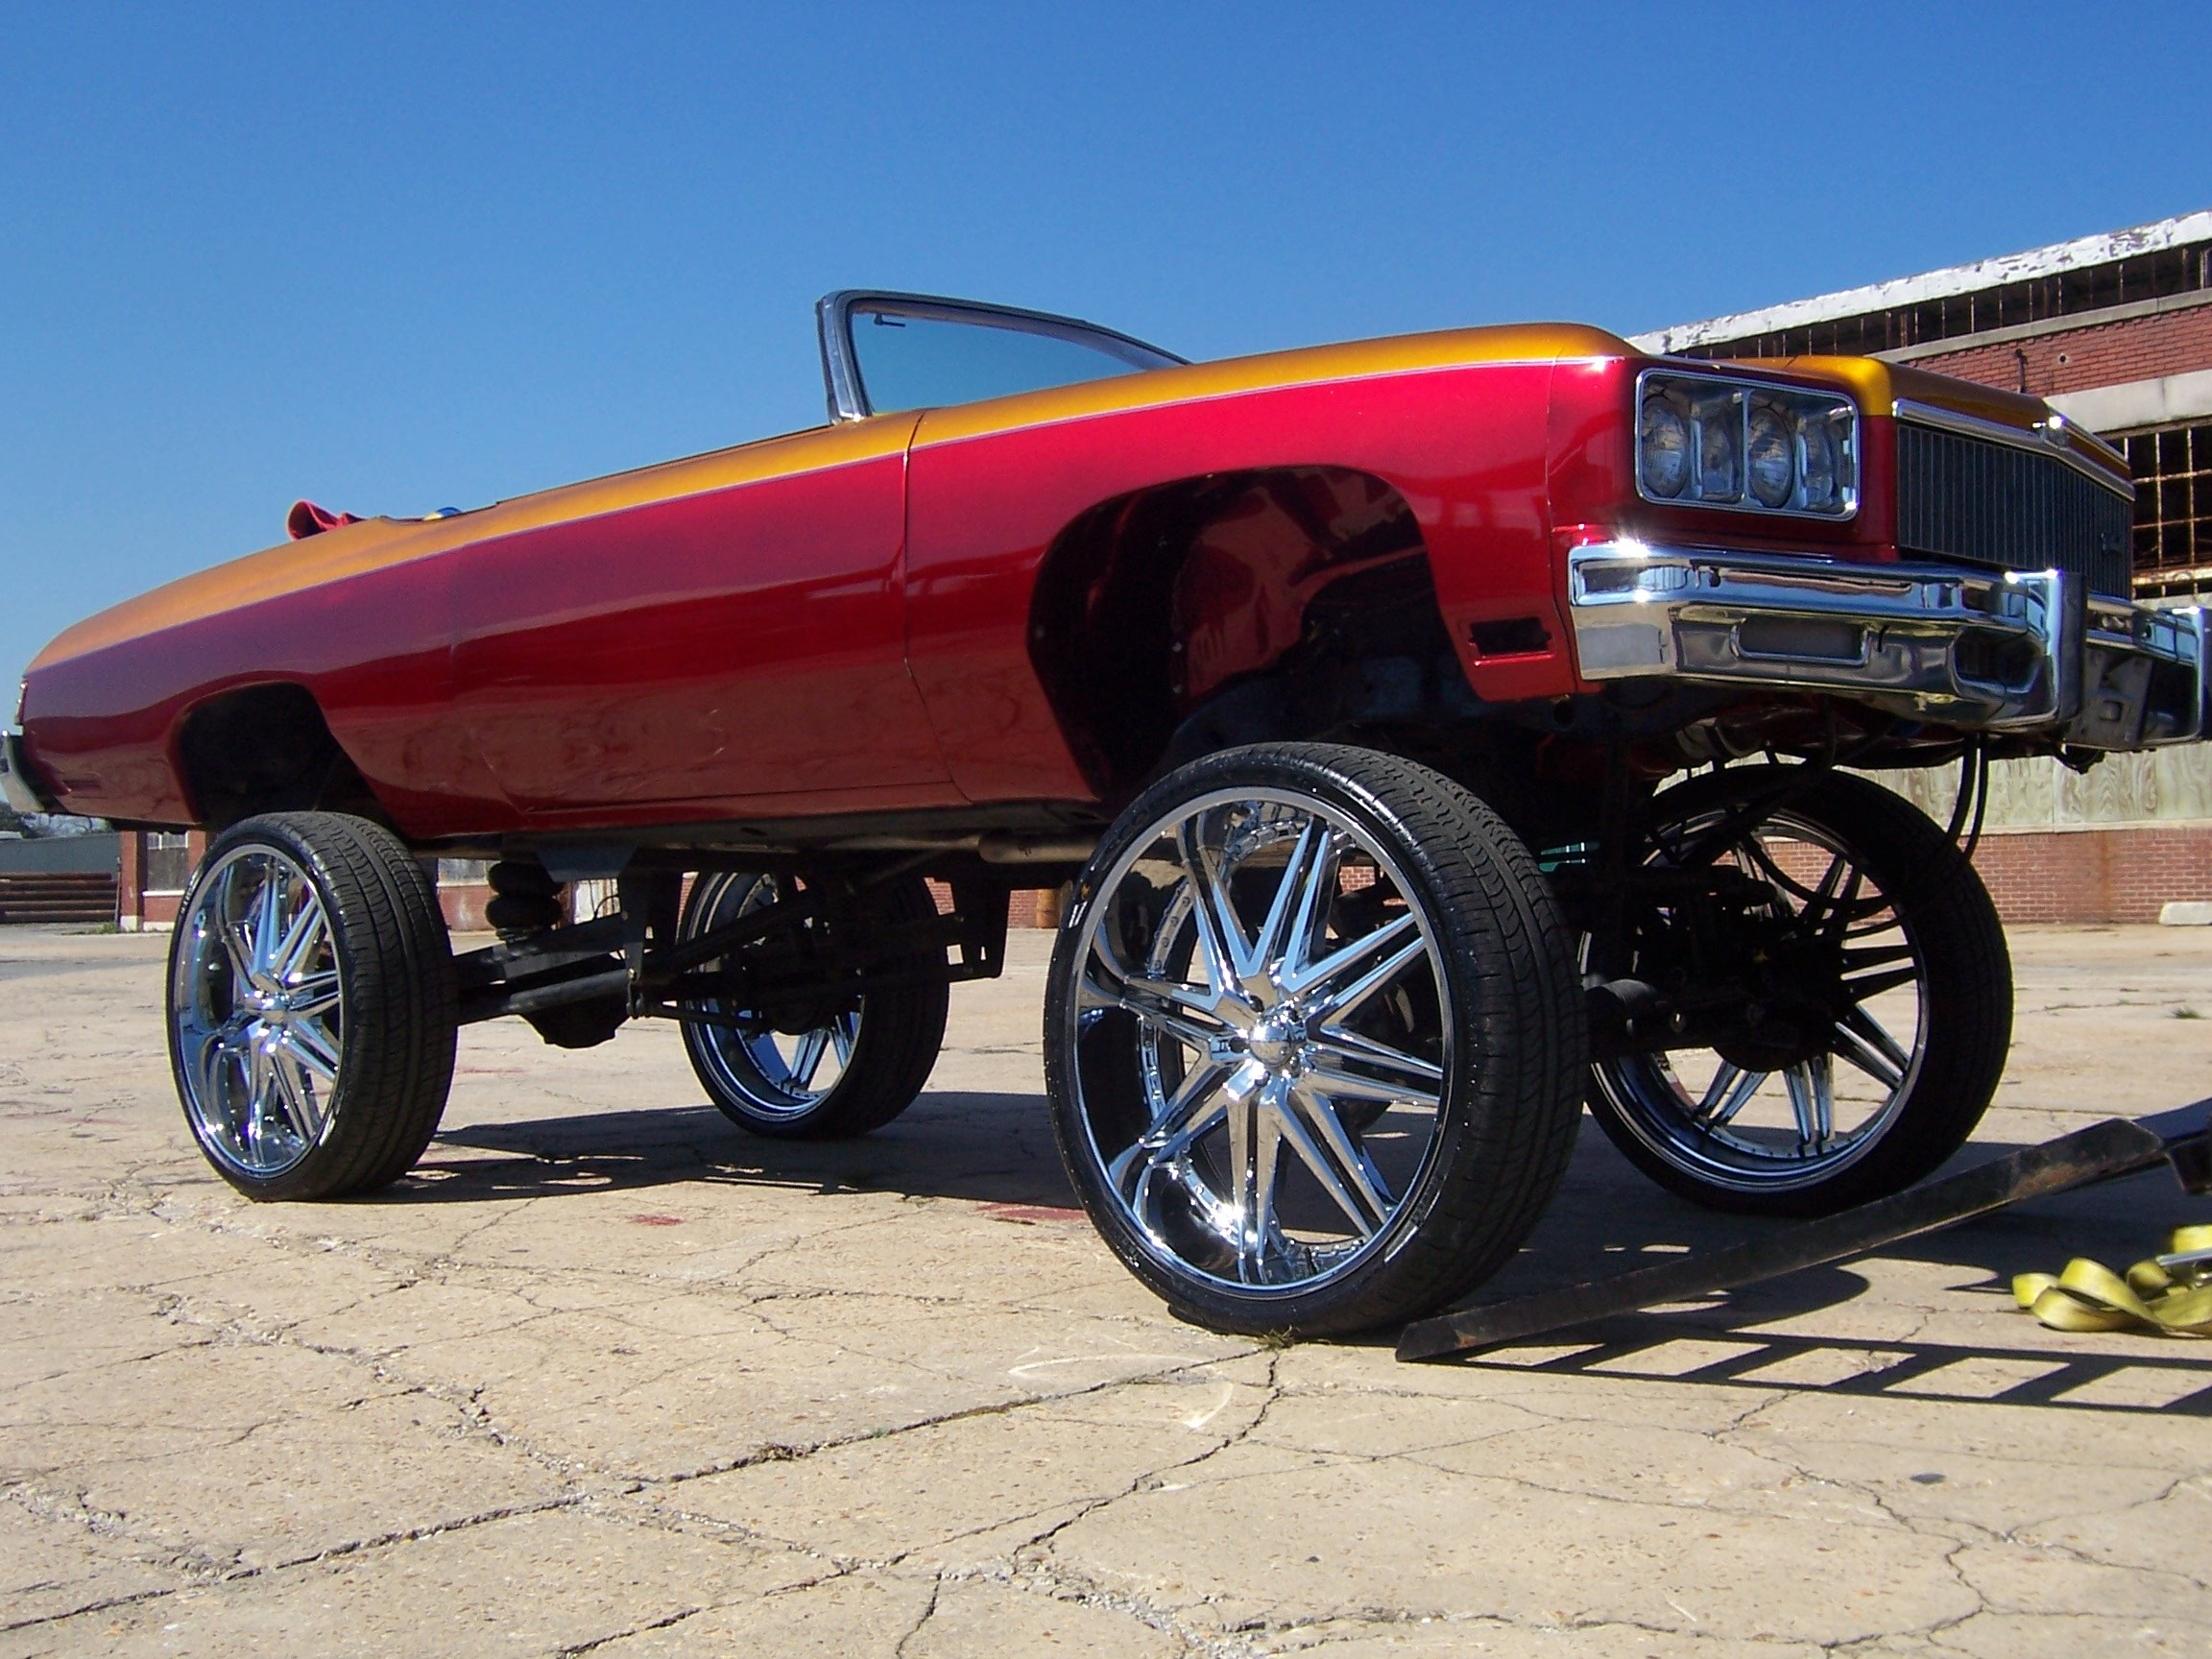 caddyzonly's 1975 Chevrolet Caprice